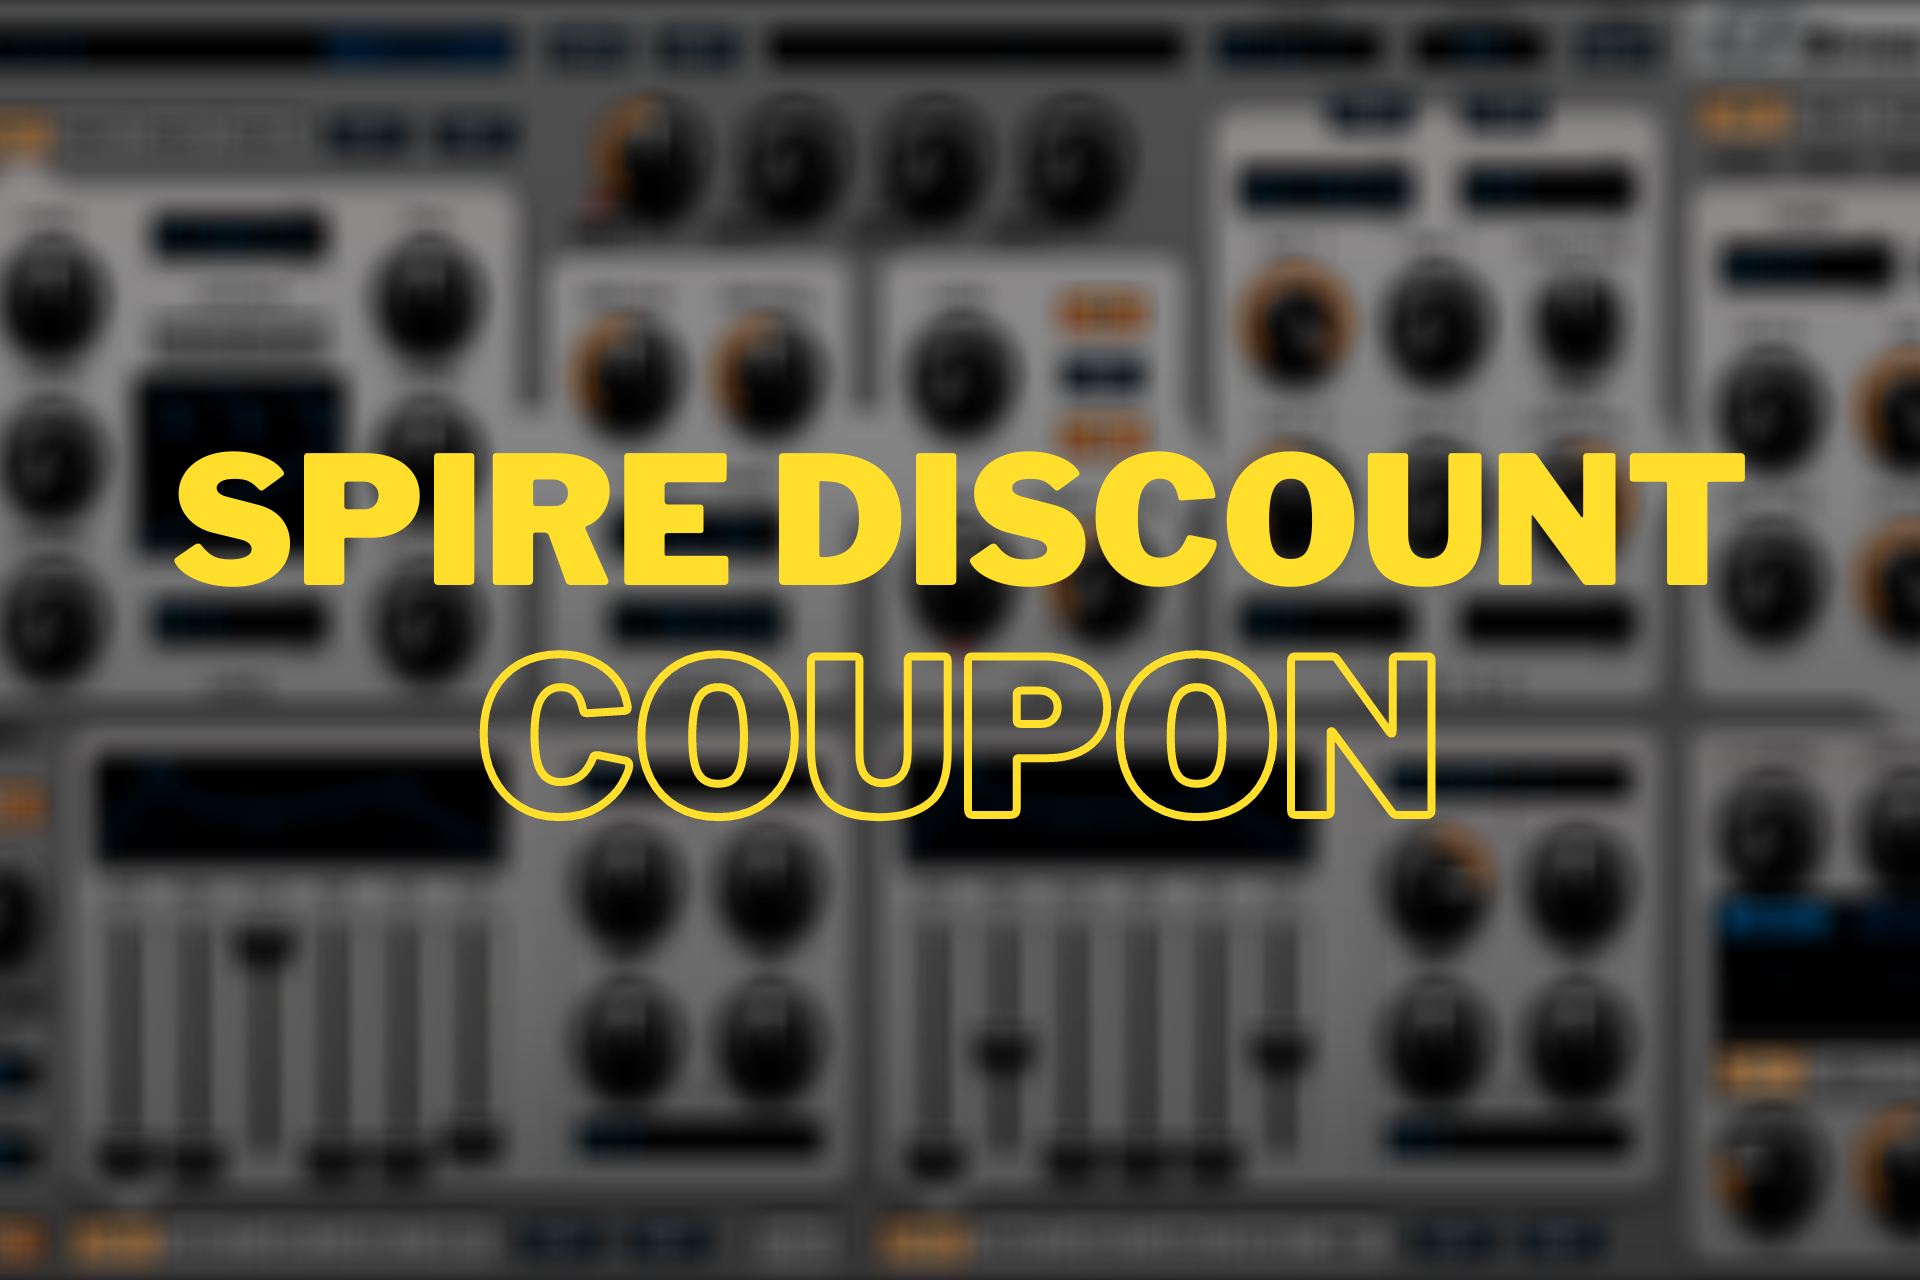 Spire Discount Coupon